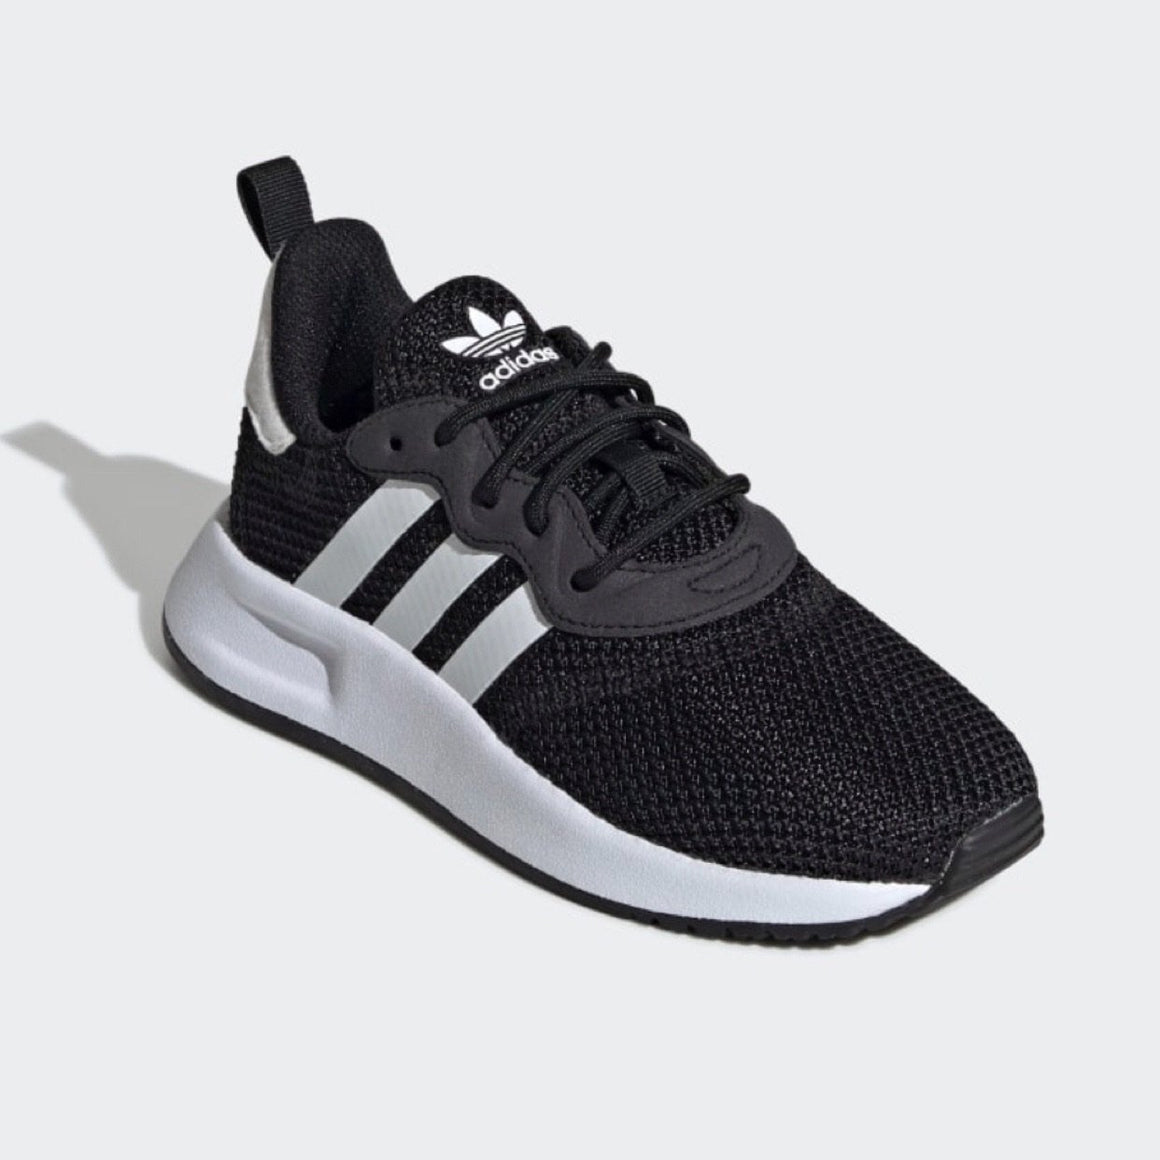 EF6091 Adidas - X_PLR S Youth Original Shoes (Kids 11 - Youth 3) footwear Adidas